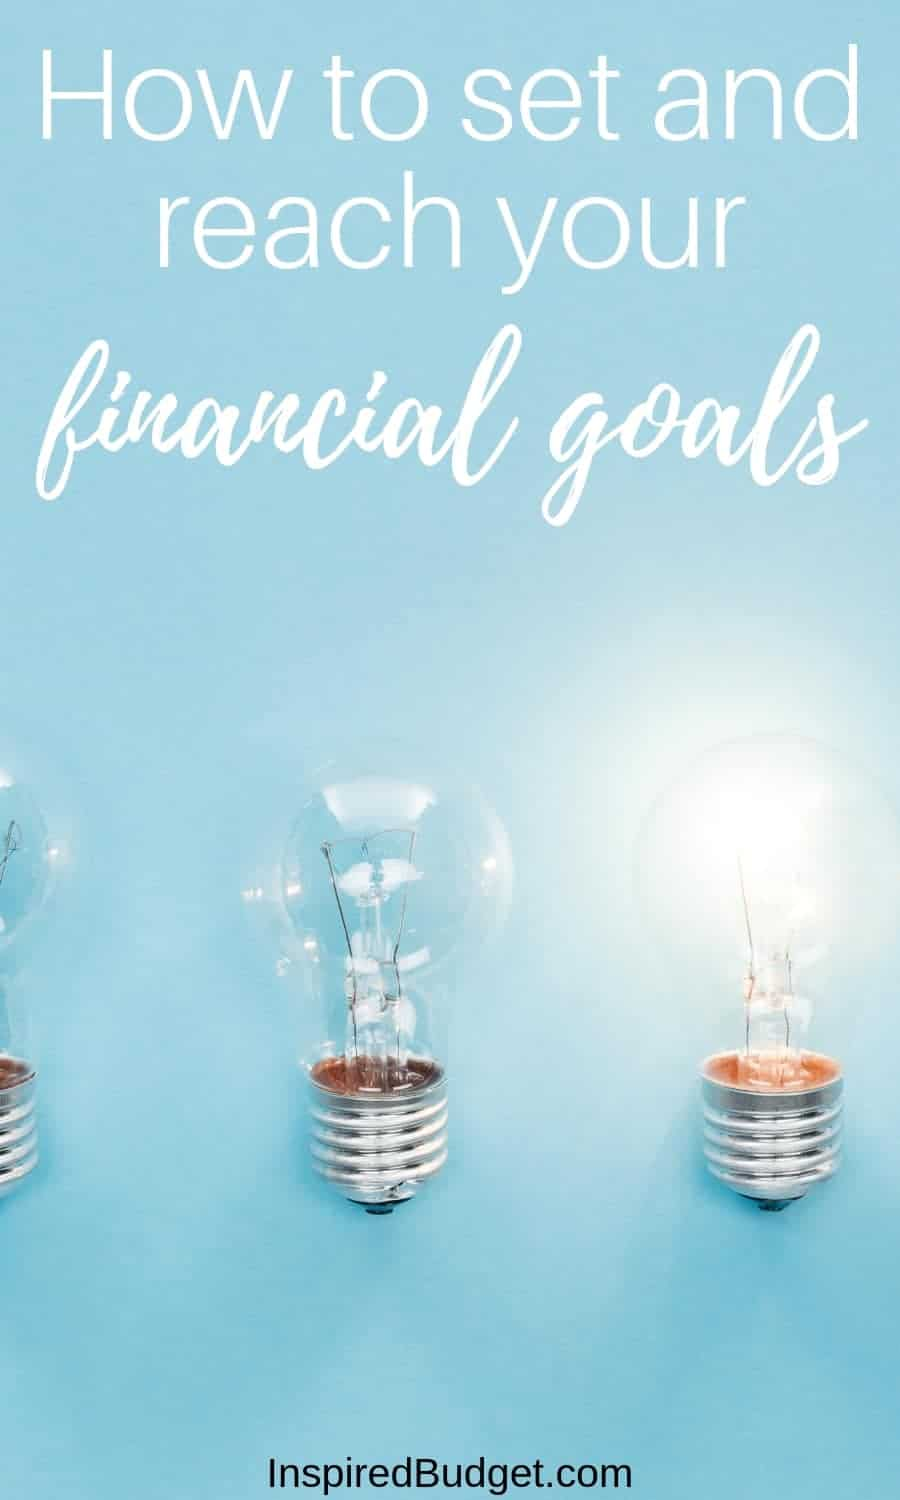 financial goals image 1